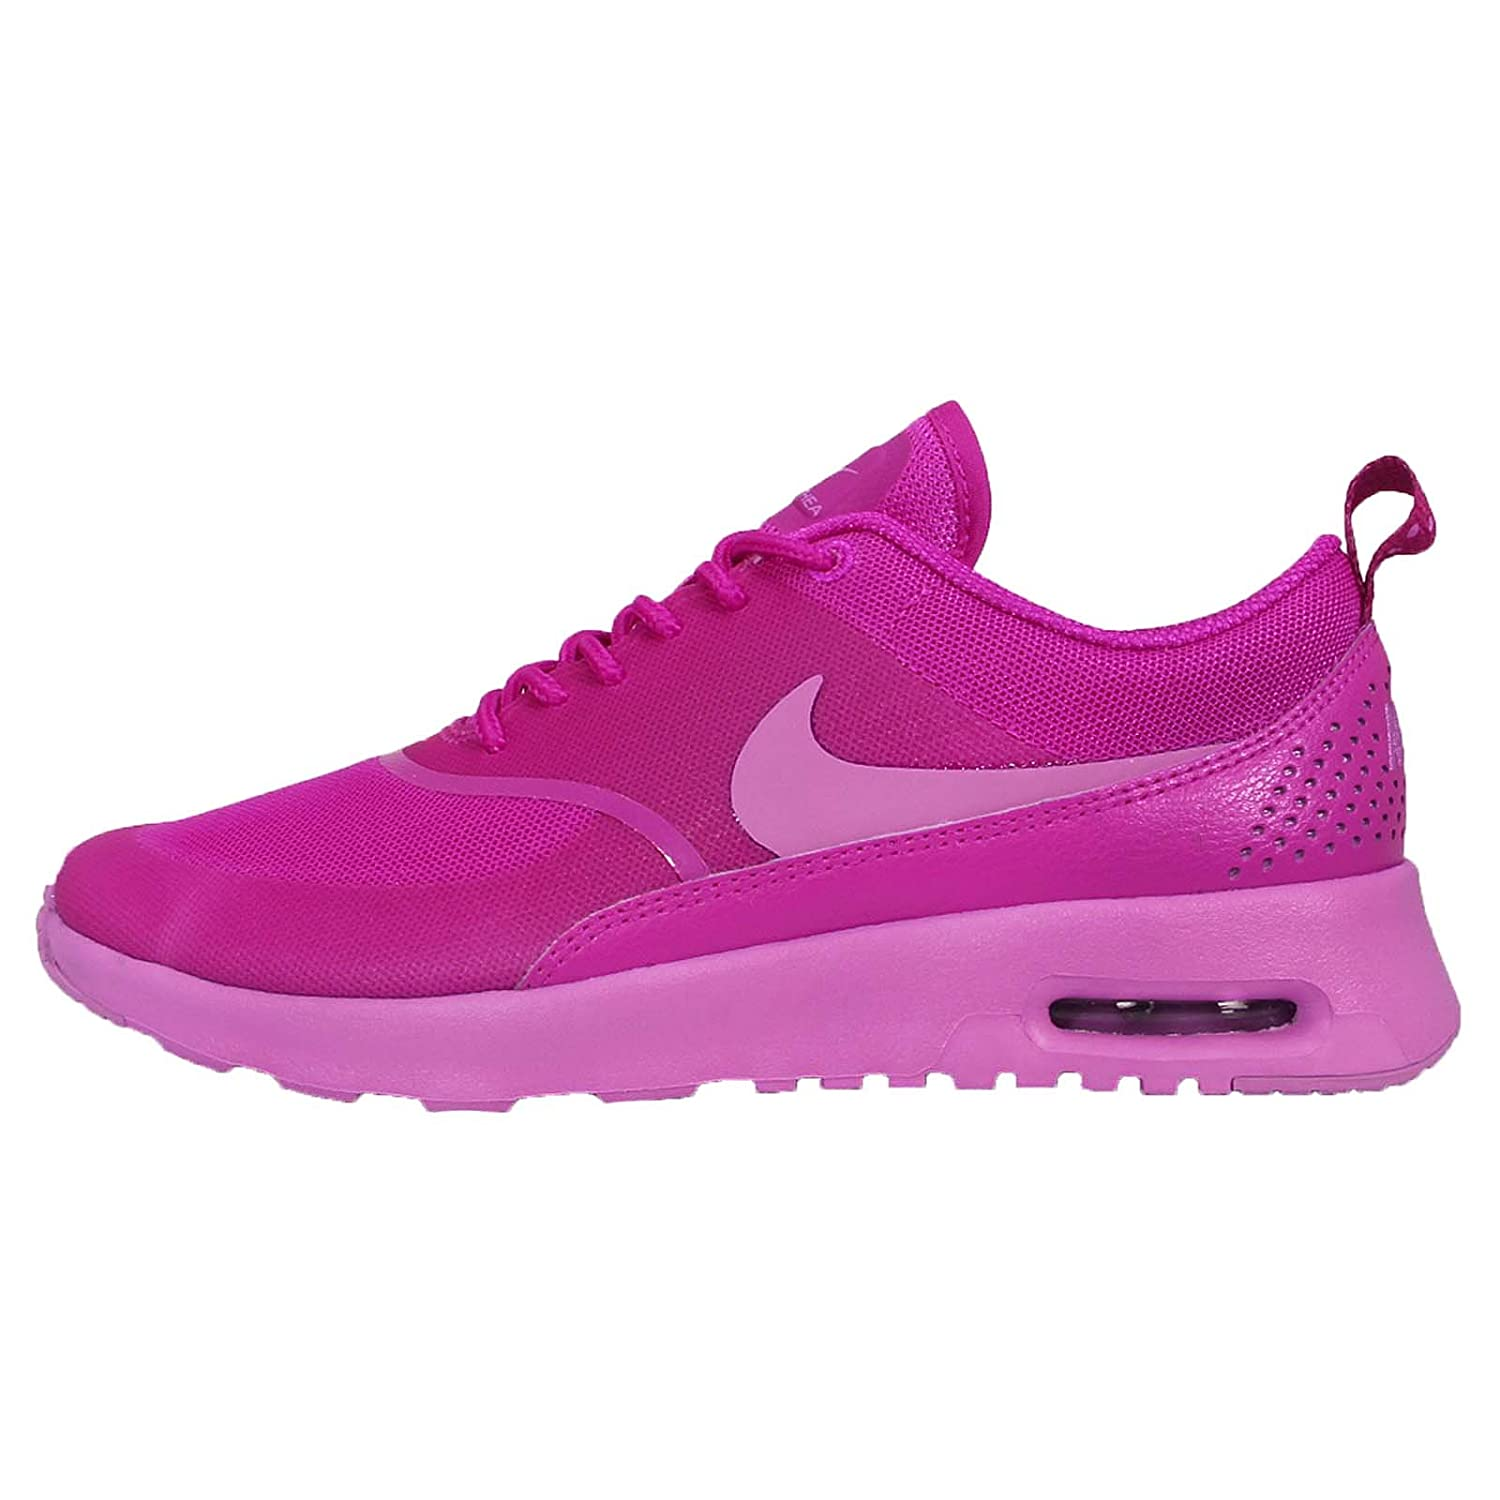 NIKE Women's Air Max Thea Low-Top Sneakers, Black B00MFRU59W 5 M US|Fucshia Flash/Fuchsia Glow